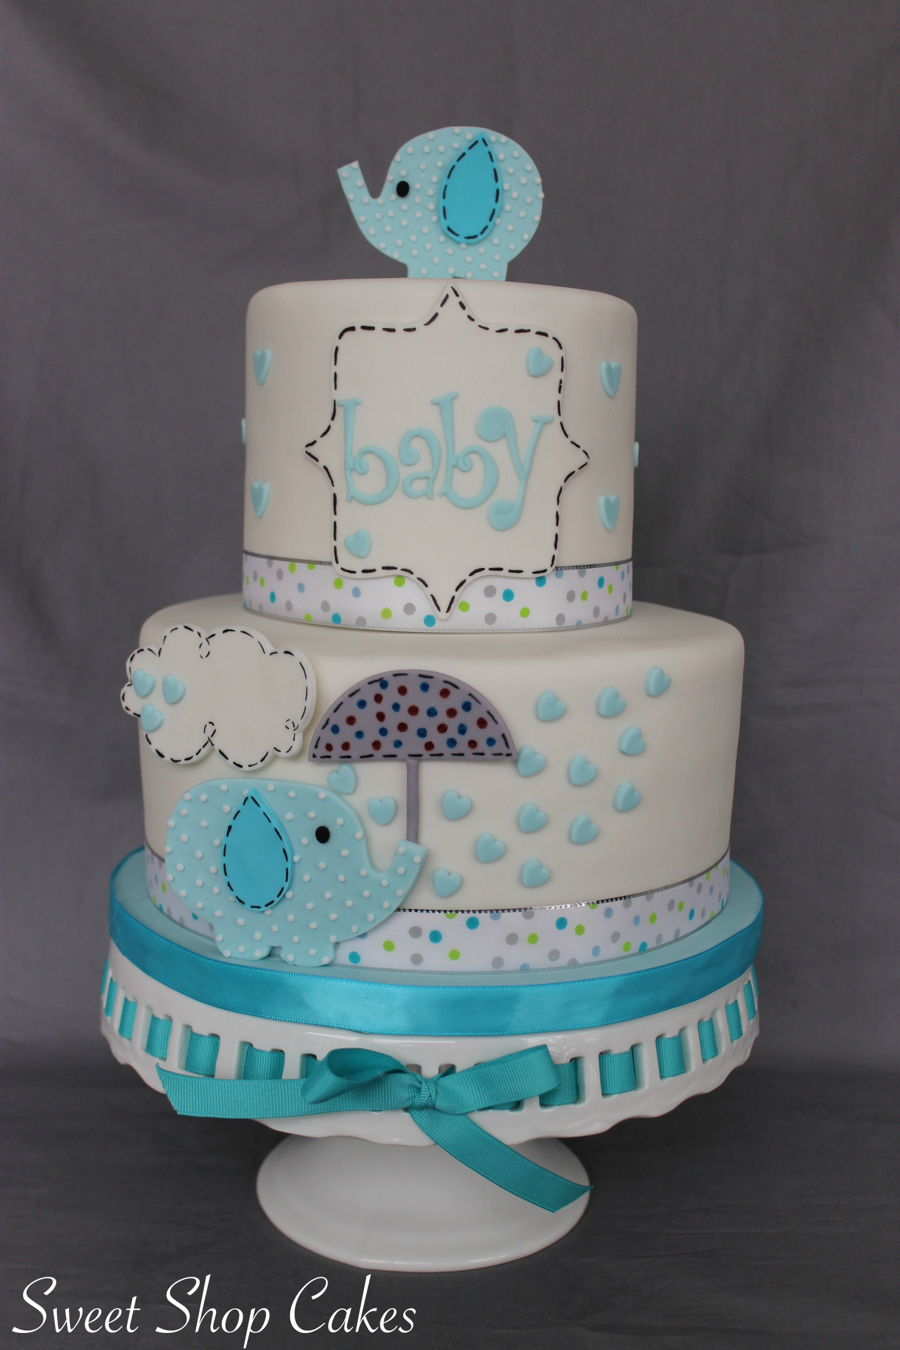 Best Elephant Baby Shower Cake On Cake Central Elephant Baby Shower Cake Baby Shower Cake Ideas Baby Shower Cake Ideas Unknown Gender ideas Baby Shower Cake Ideas